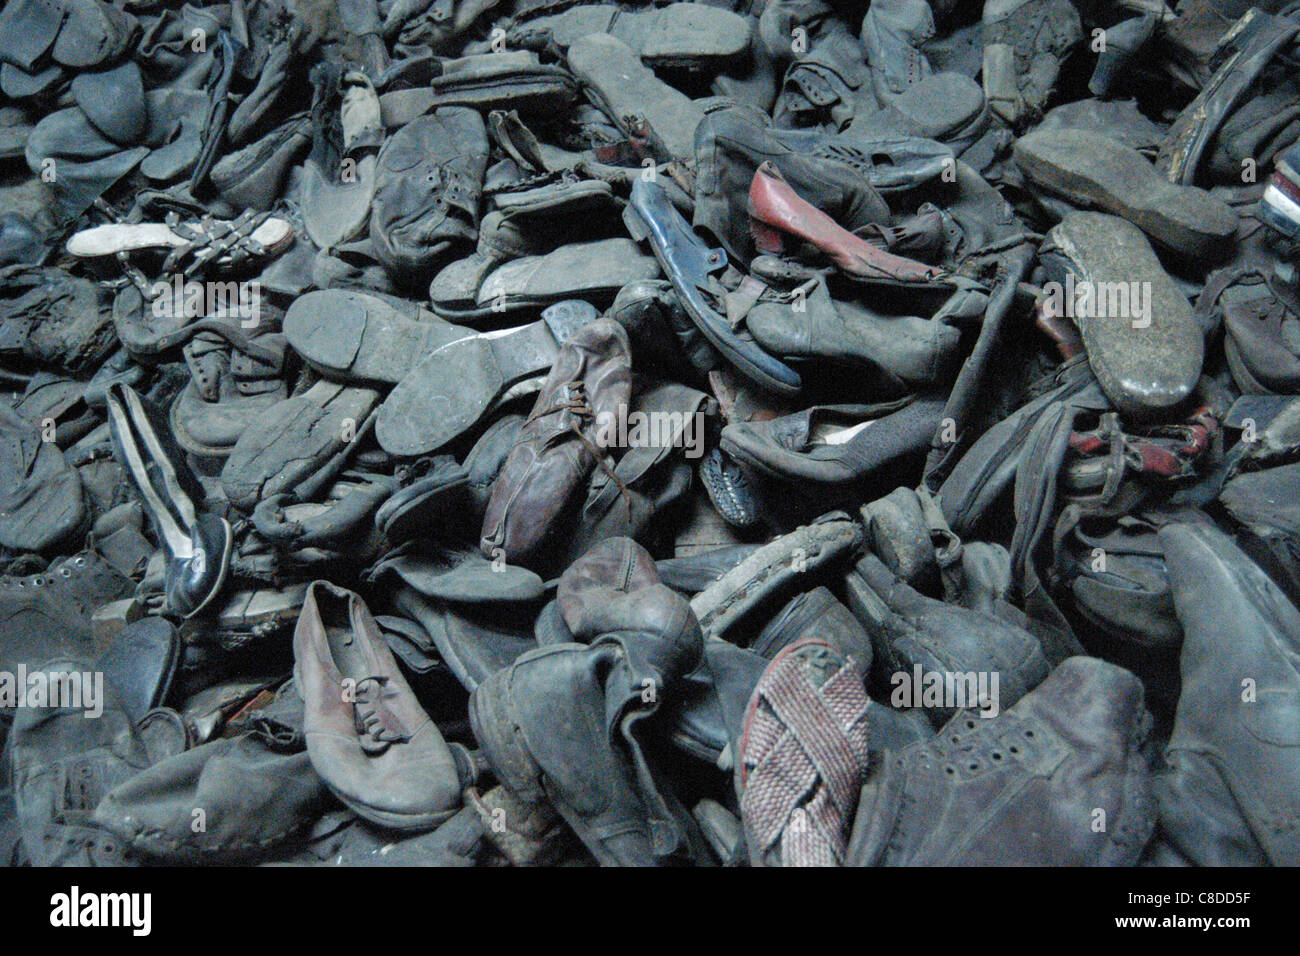 Shoes of the victims seen in the Auschwitz I German Nazi concentration camp in Oswiecim, Poland. - Stock Image